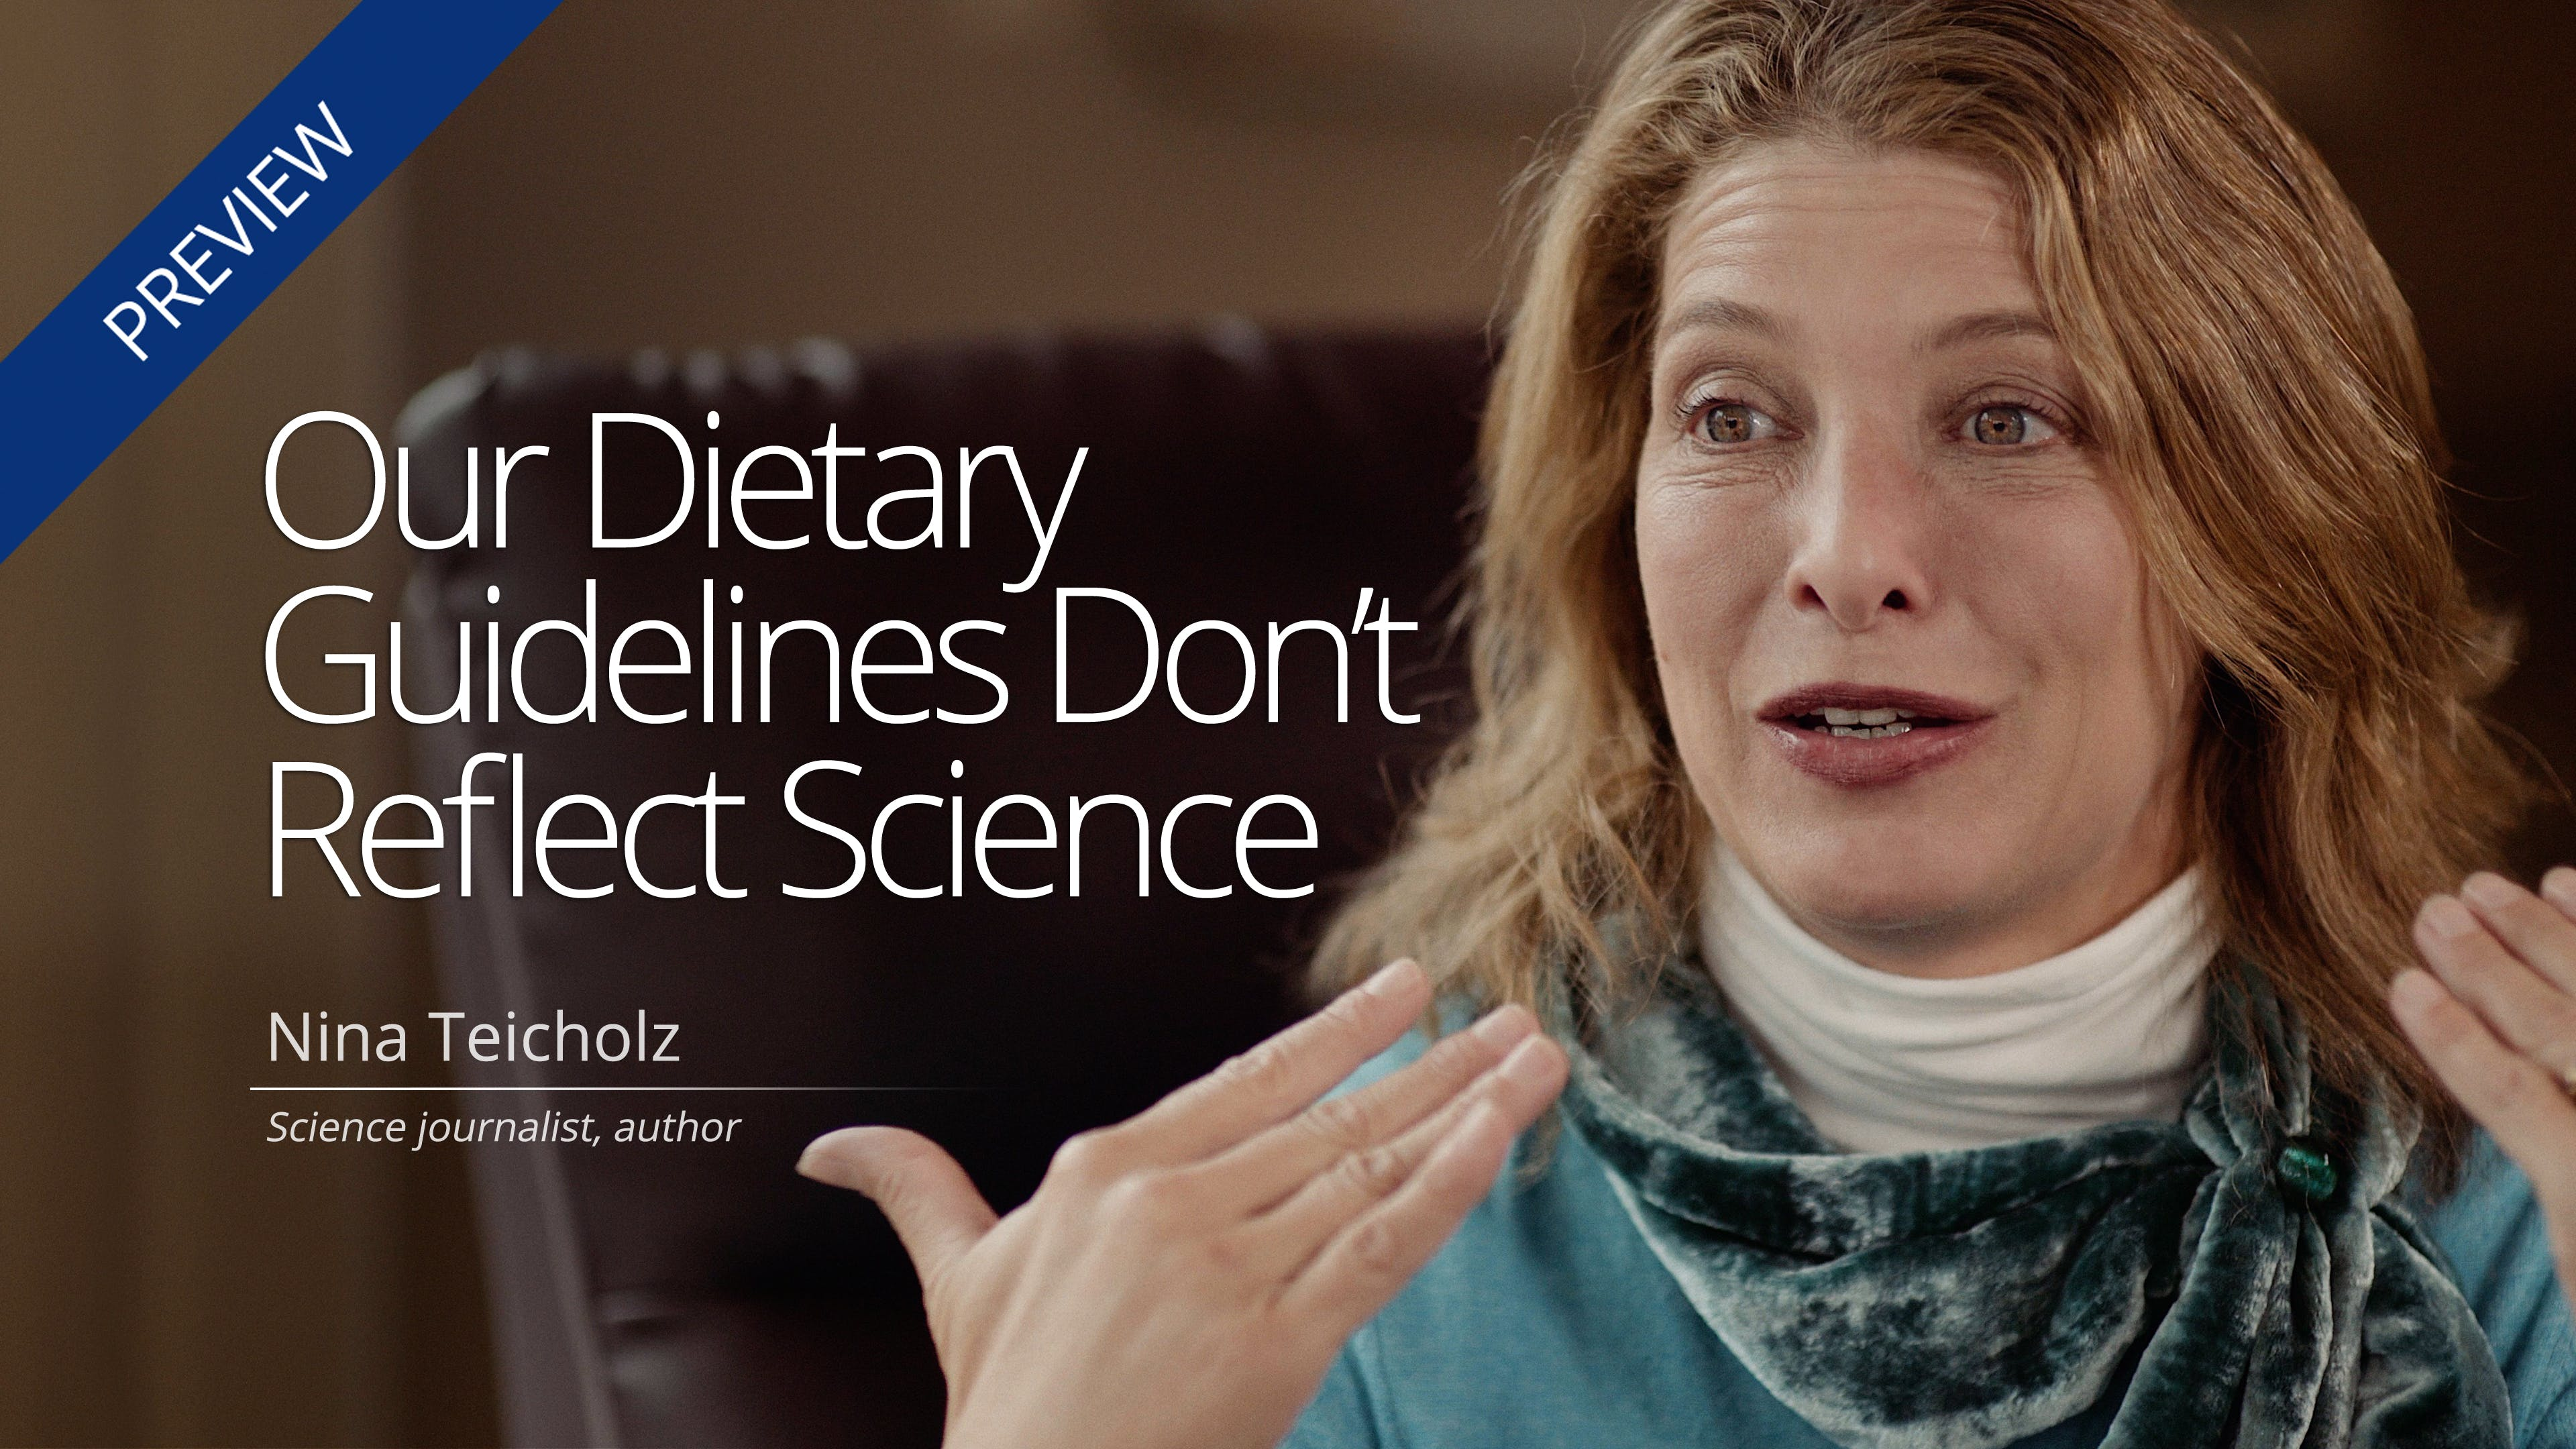 Our Dietary Guidelines Don't Reflect Science